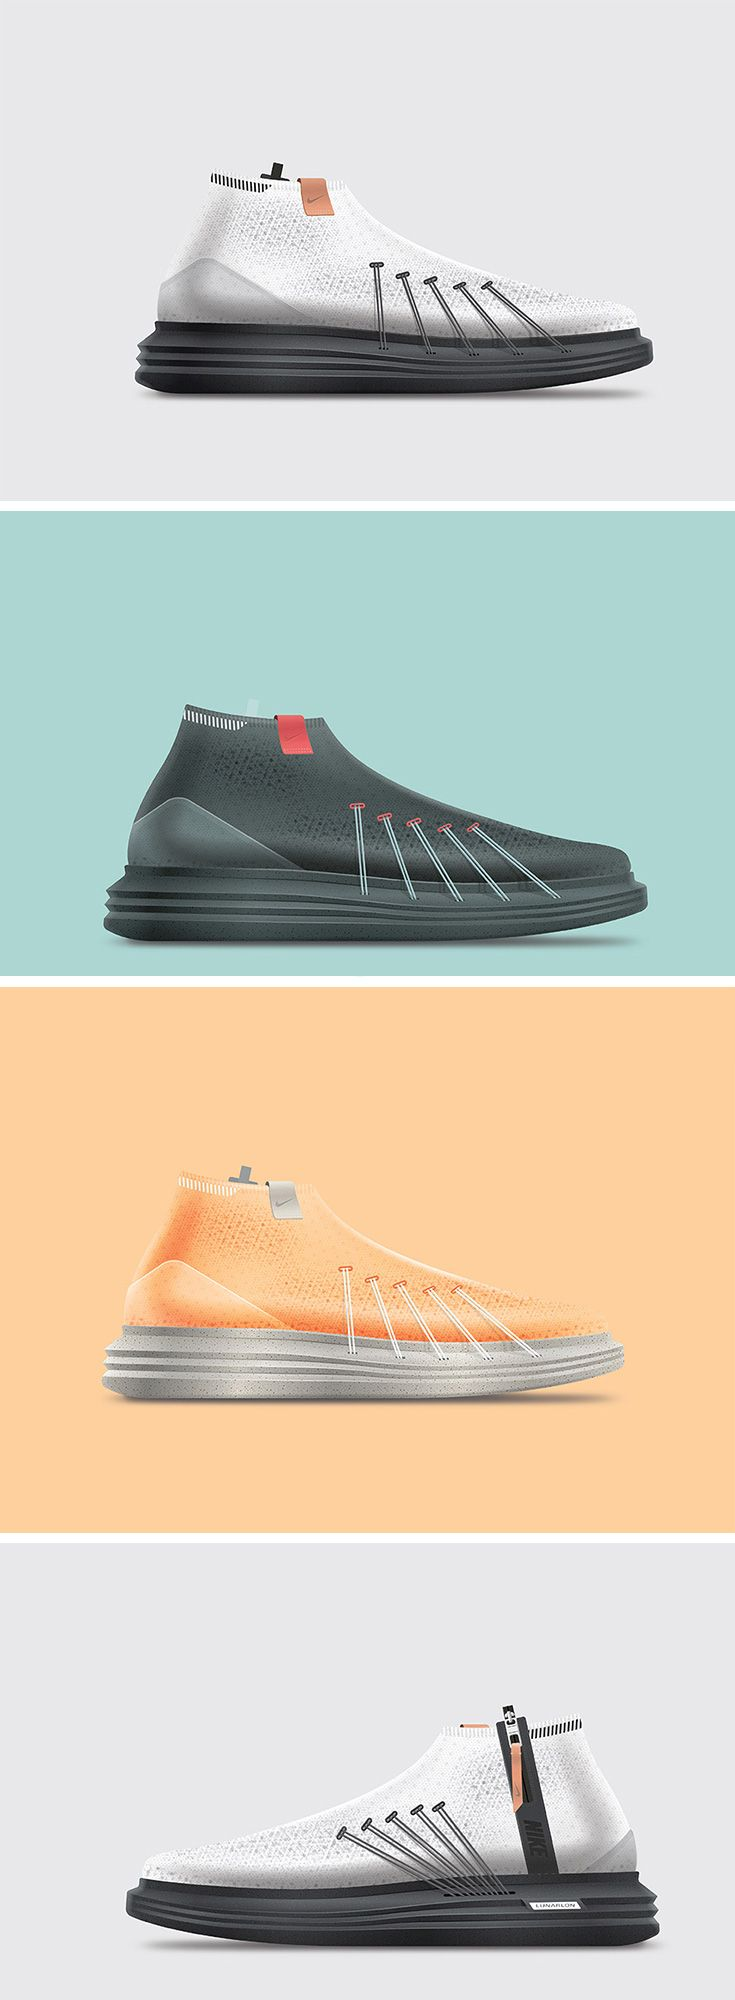 Since 2008, Nike's Flywire design has continued to evolve, but most have integrated the strategically placed cables beneath textile. Rather than hide this dynamic tech, the Nike Untitled 7 shoe concept highlights it as a primary footwear feature. The Flywire is stretched and extends through the sole to the upper portion of the shoe, much like a suspension bridge. The cables wrap over the top of the foot onto the other side of the shoe, securing the foot to the sole and upper.